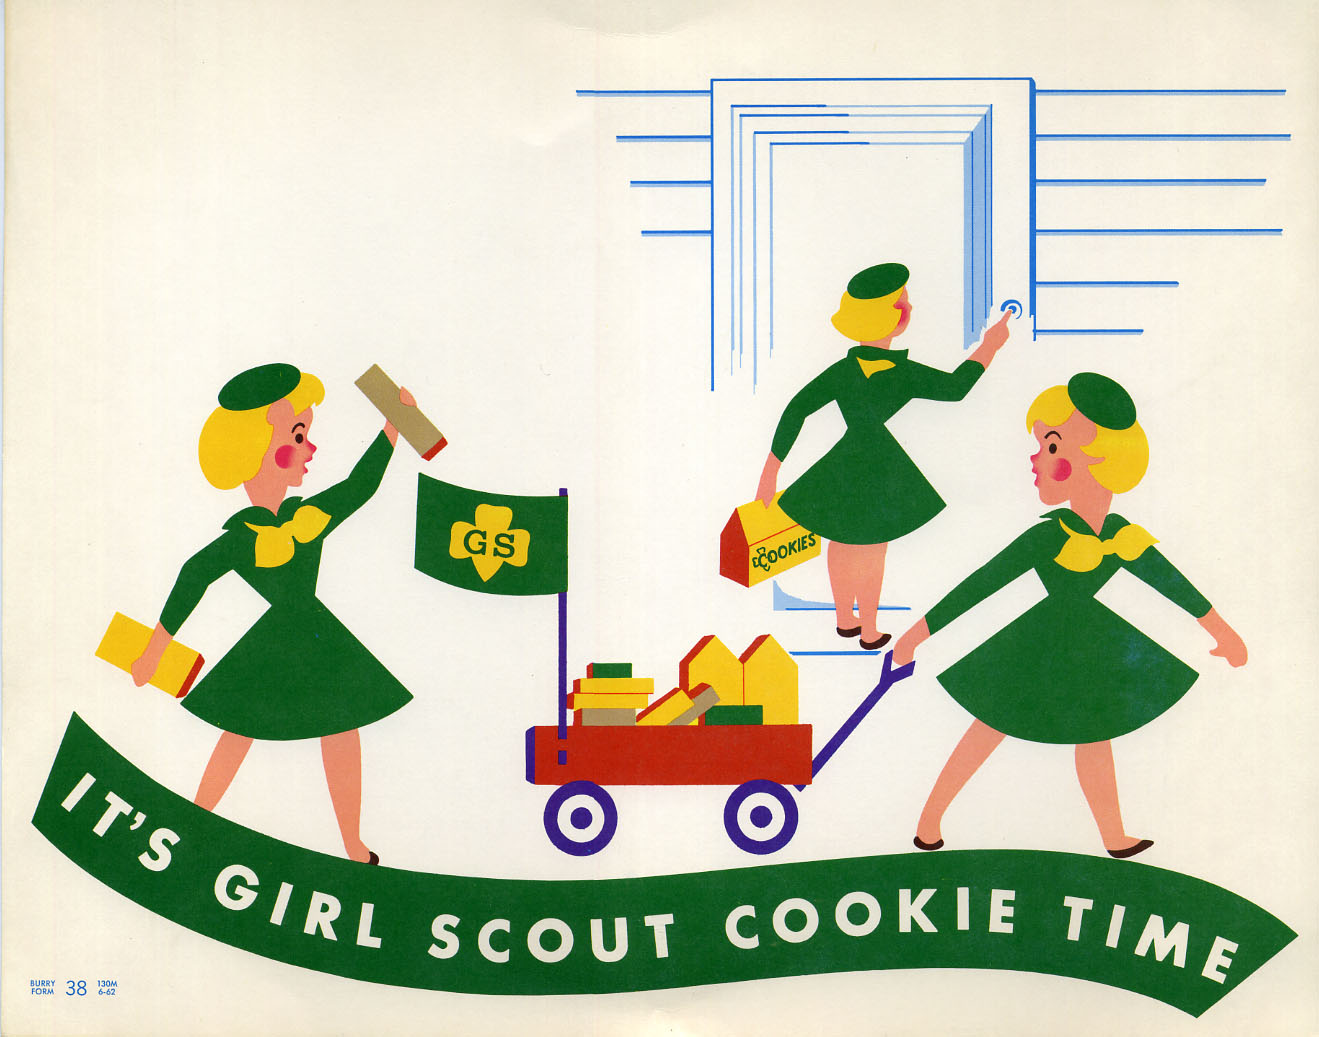 Girl Scout Cookies - date unknown